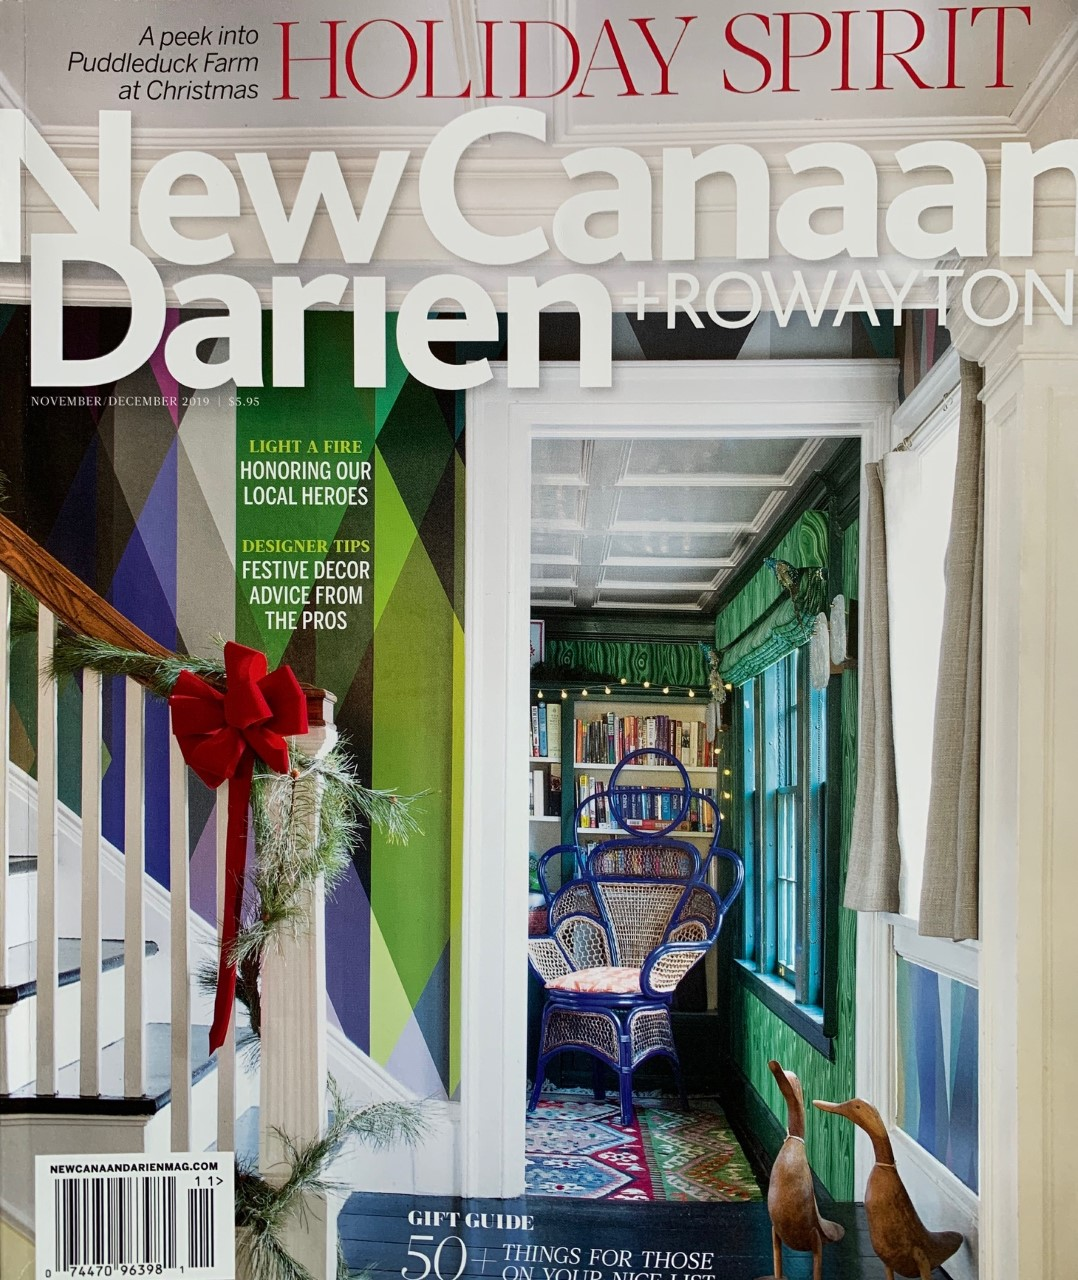 New Canaan, Darien + Rowayton Magazine Nov/Dec 2019